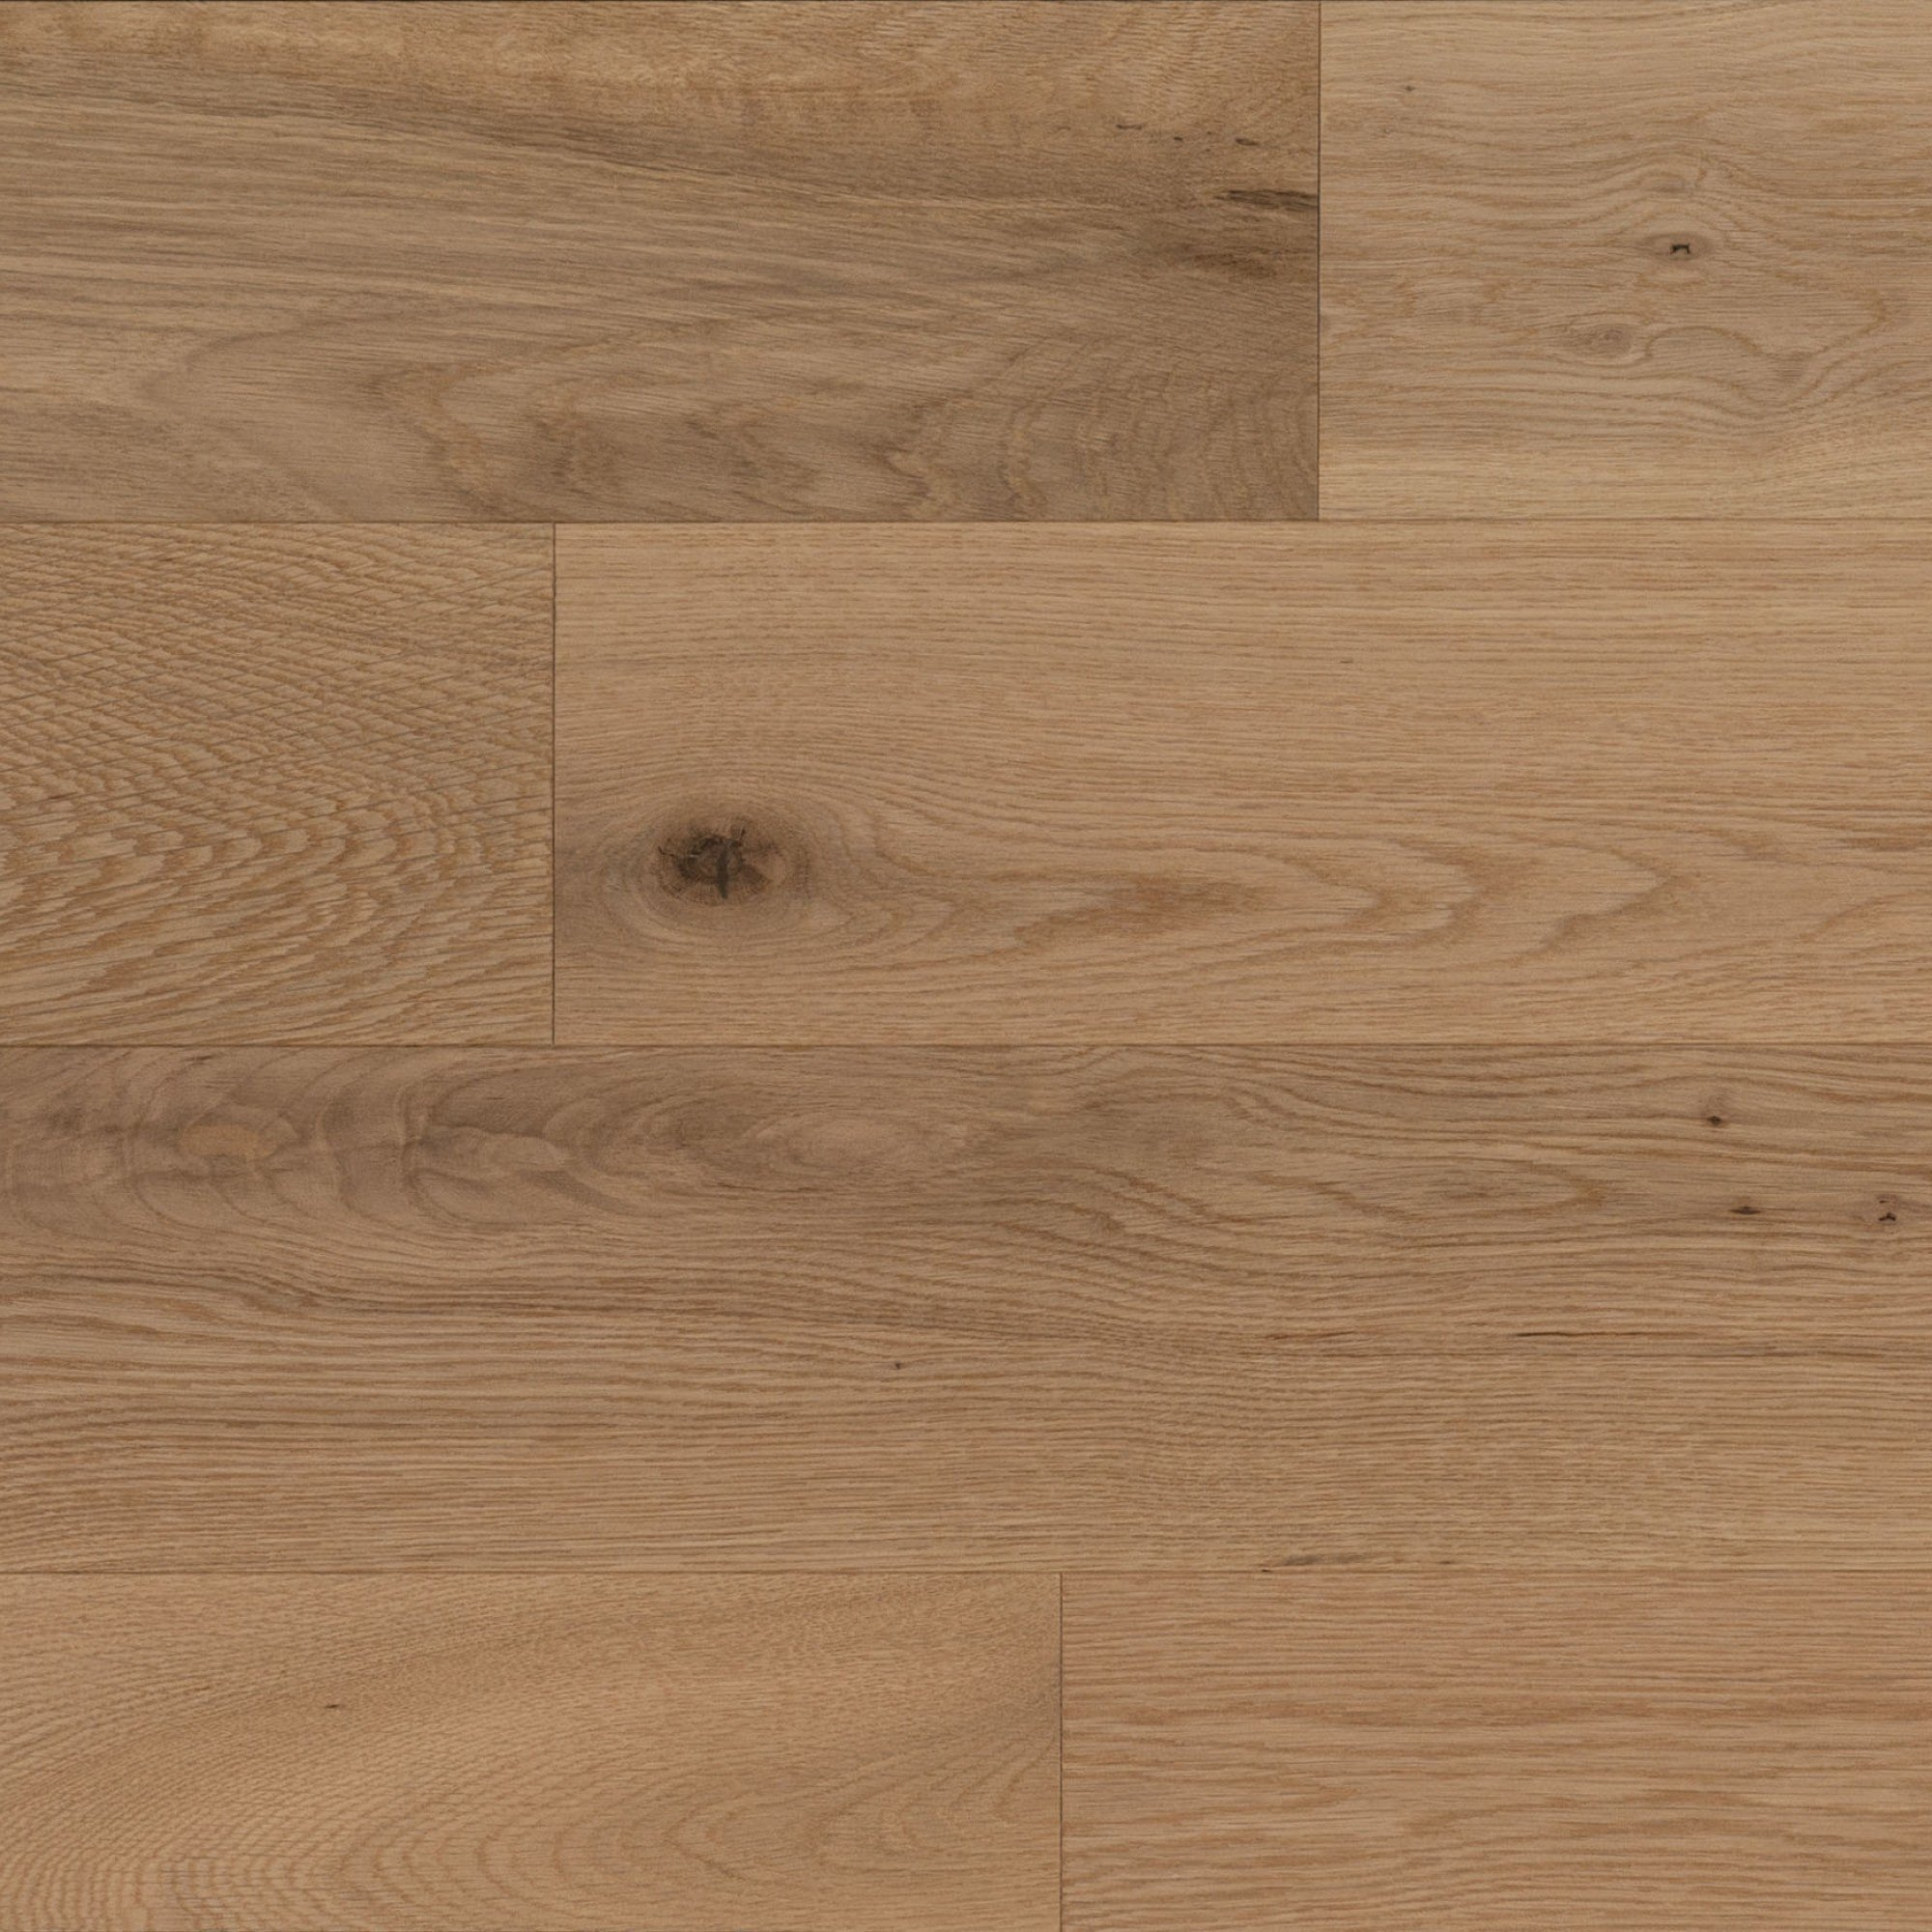 Laminated Flooring Special Characters And Specifications White Oak Character Brushed - Floor image